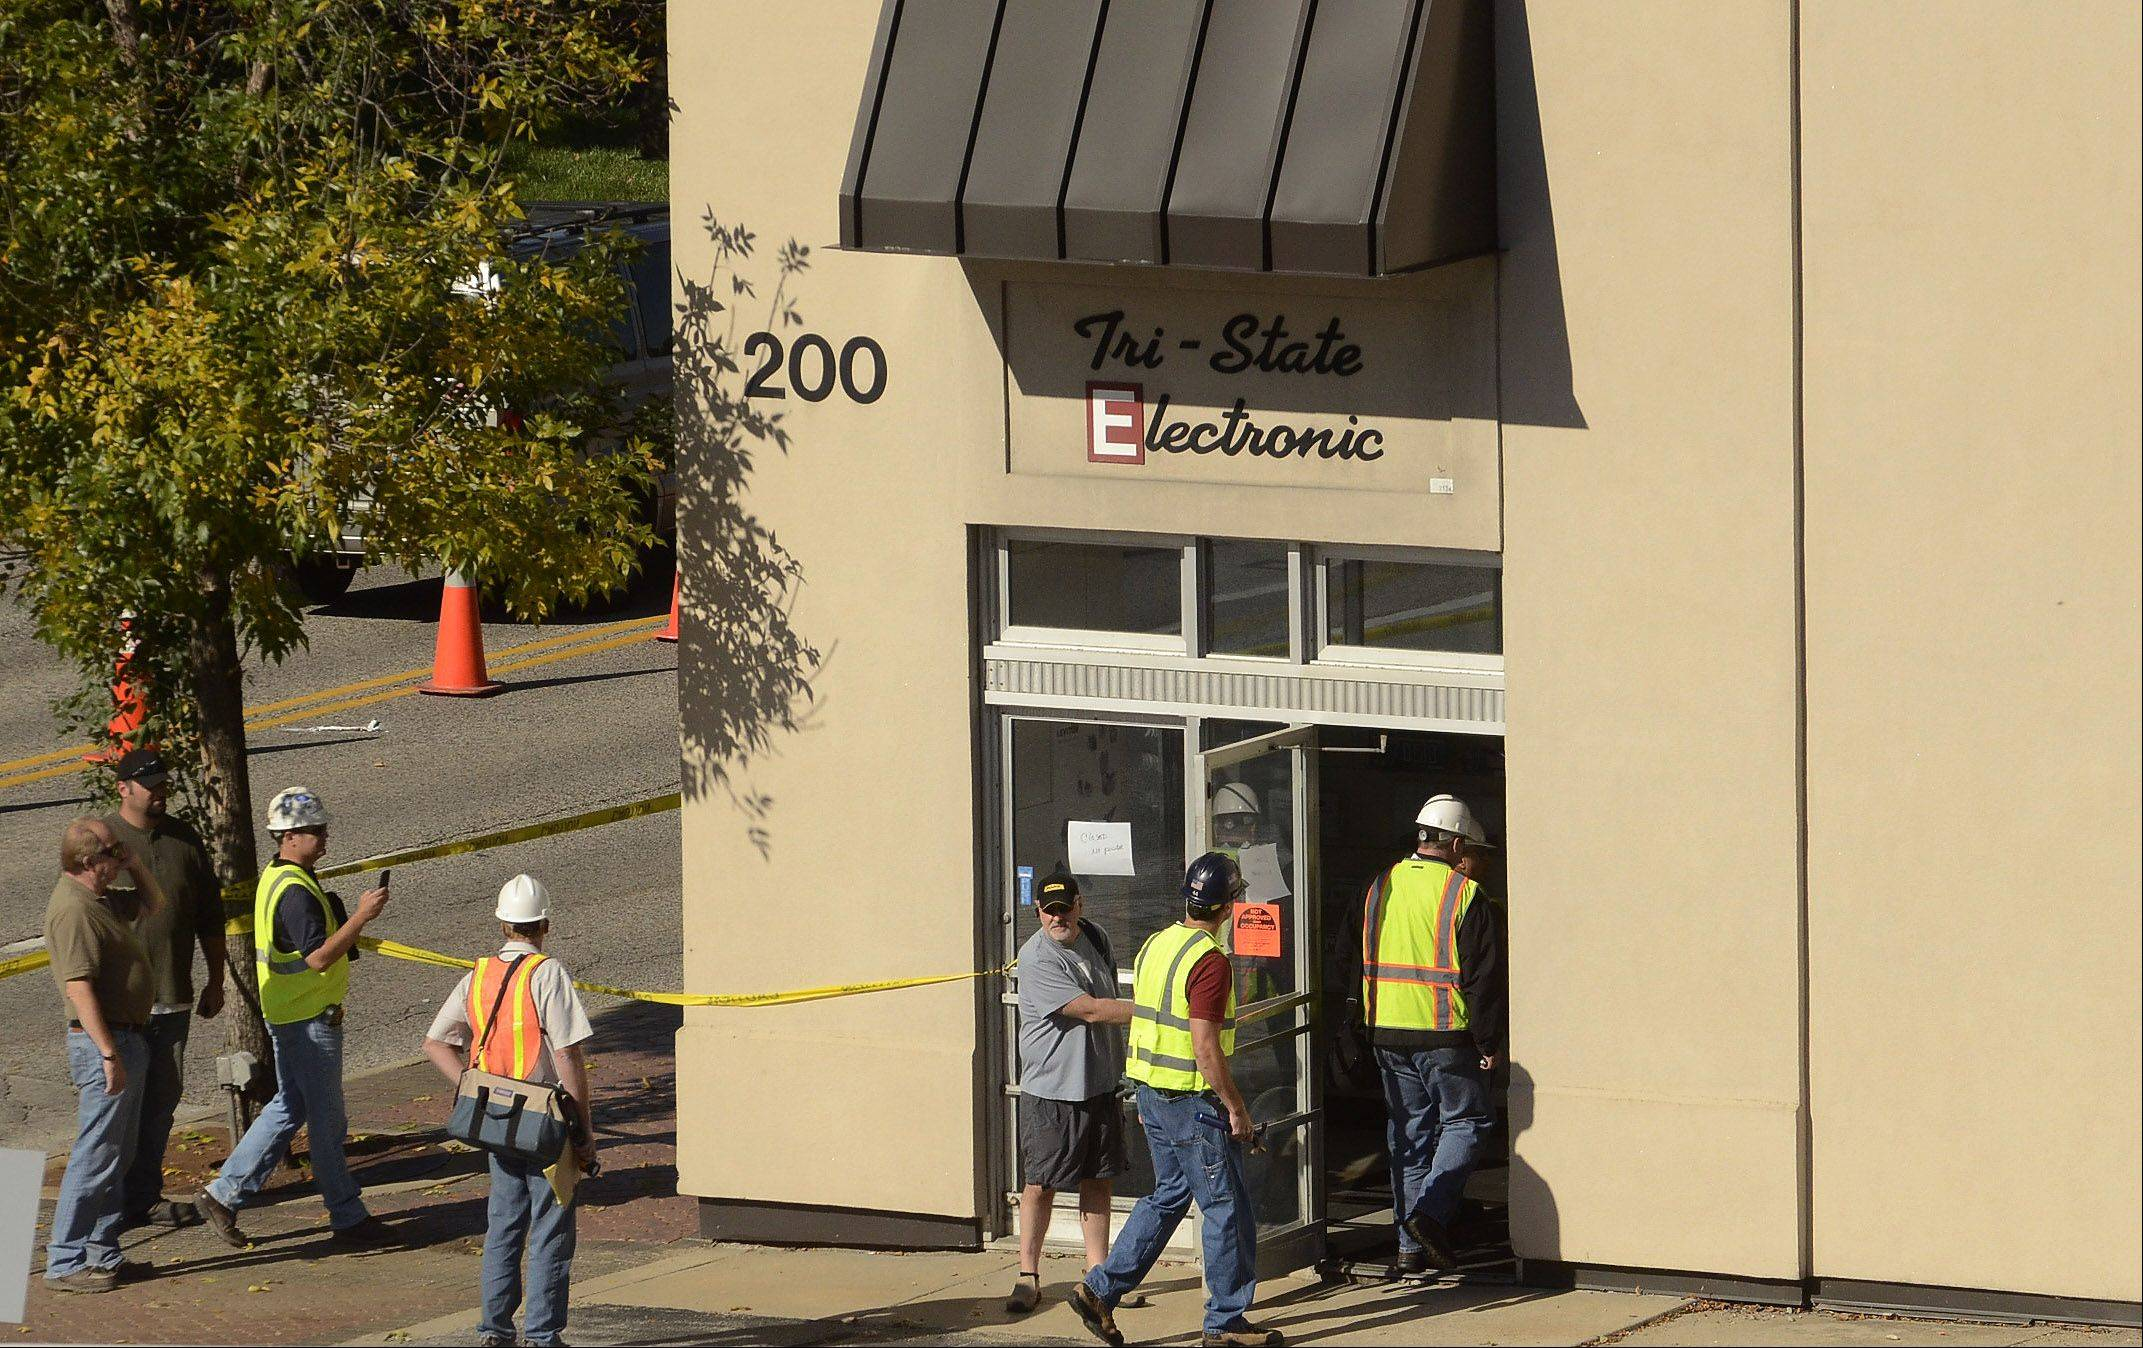 Workers enter Tri-State Electronics in Mount Prospect to inspect structural damage due to a roof collapse.